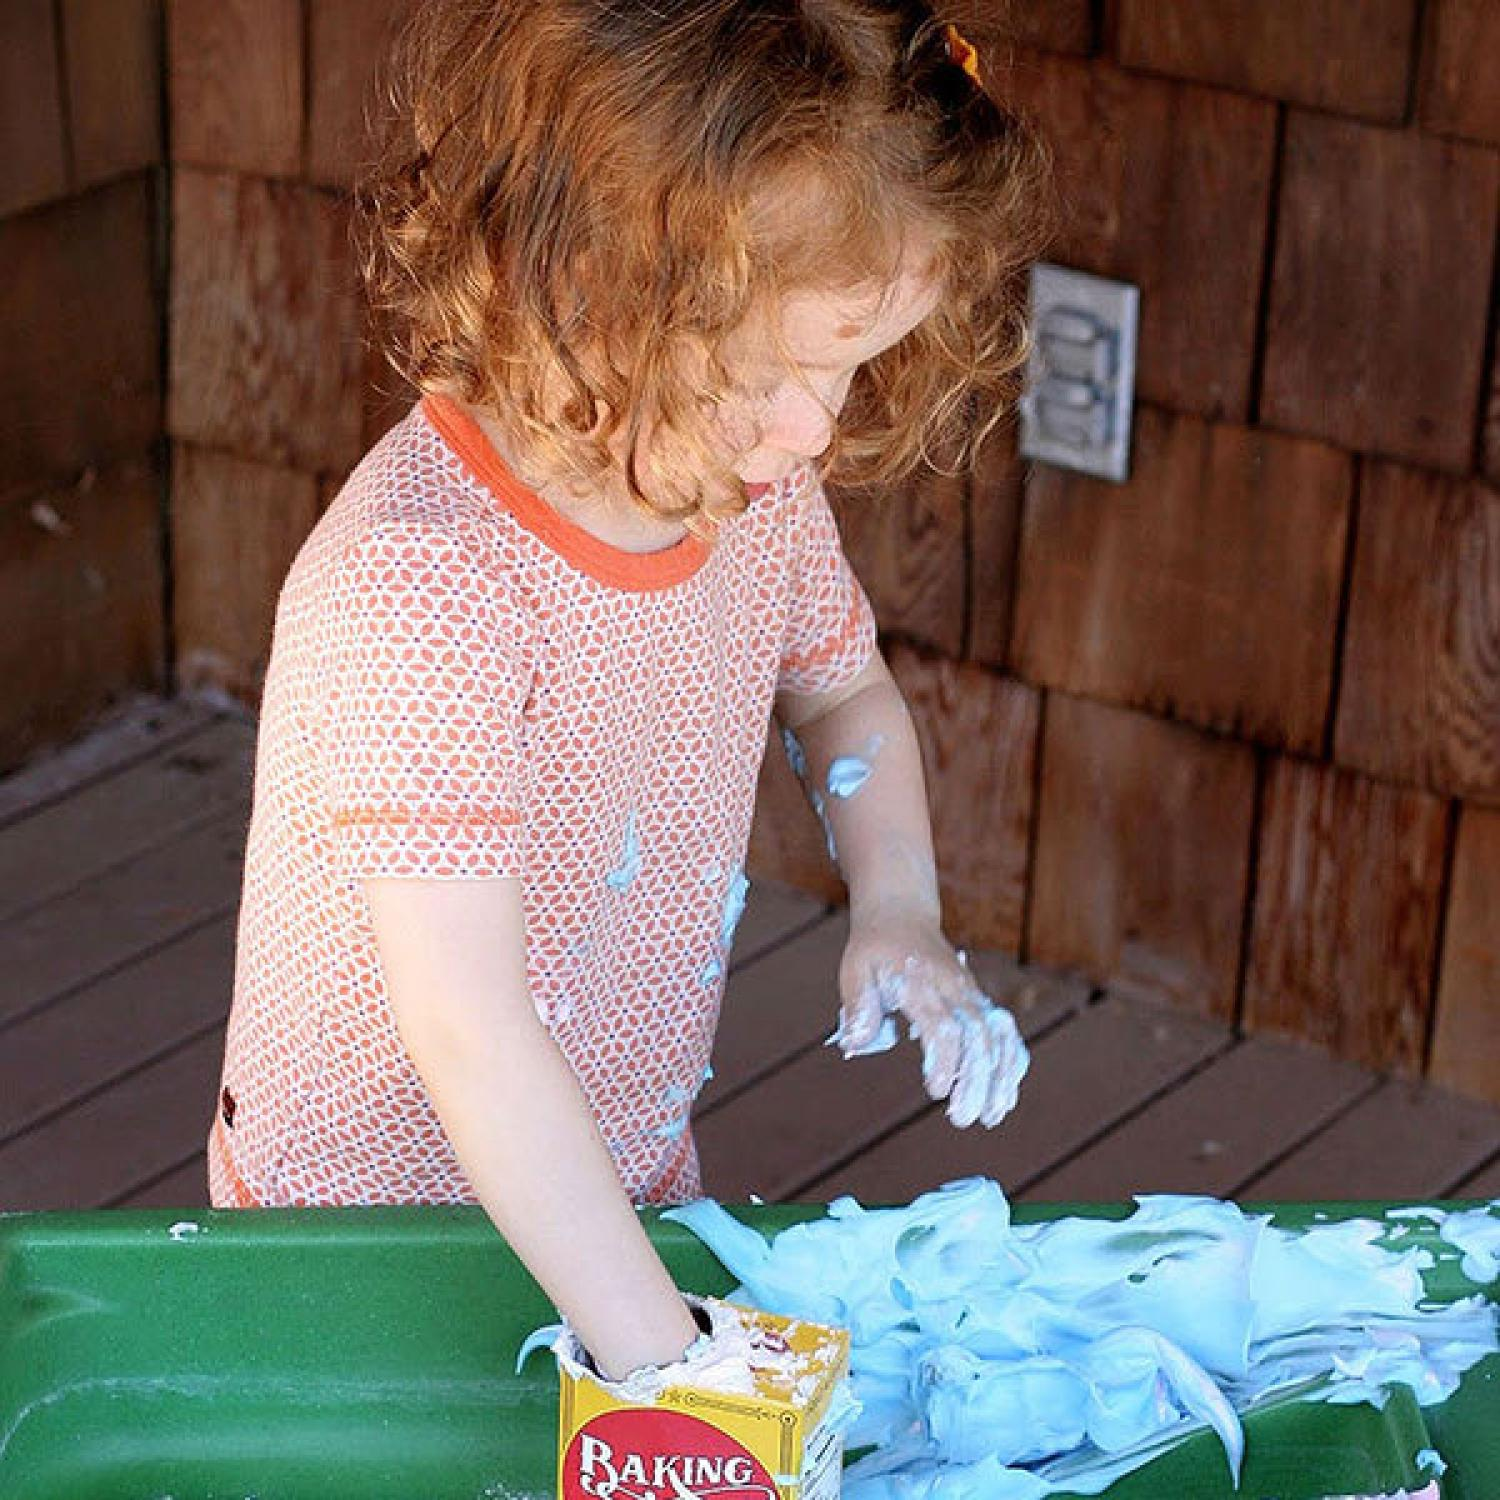 10 Awesomely Messy Outdoor Activities for Kids